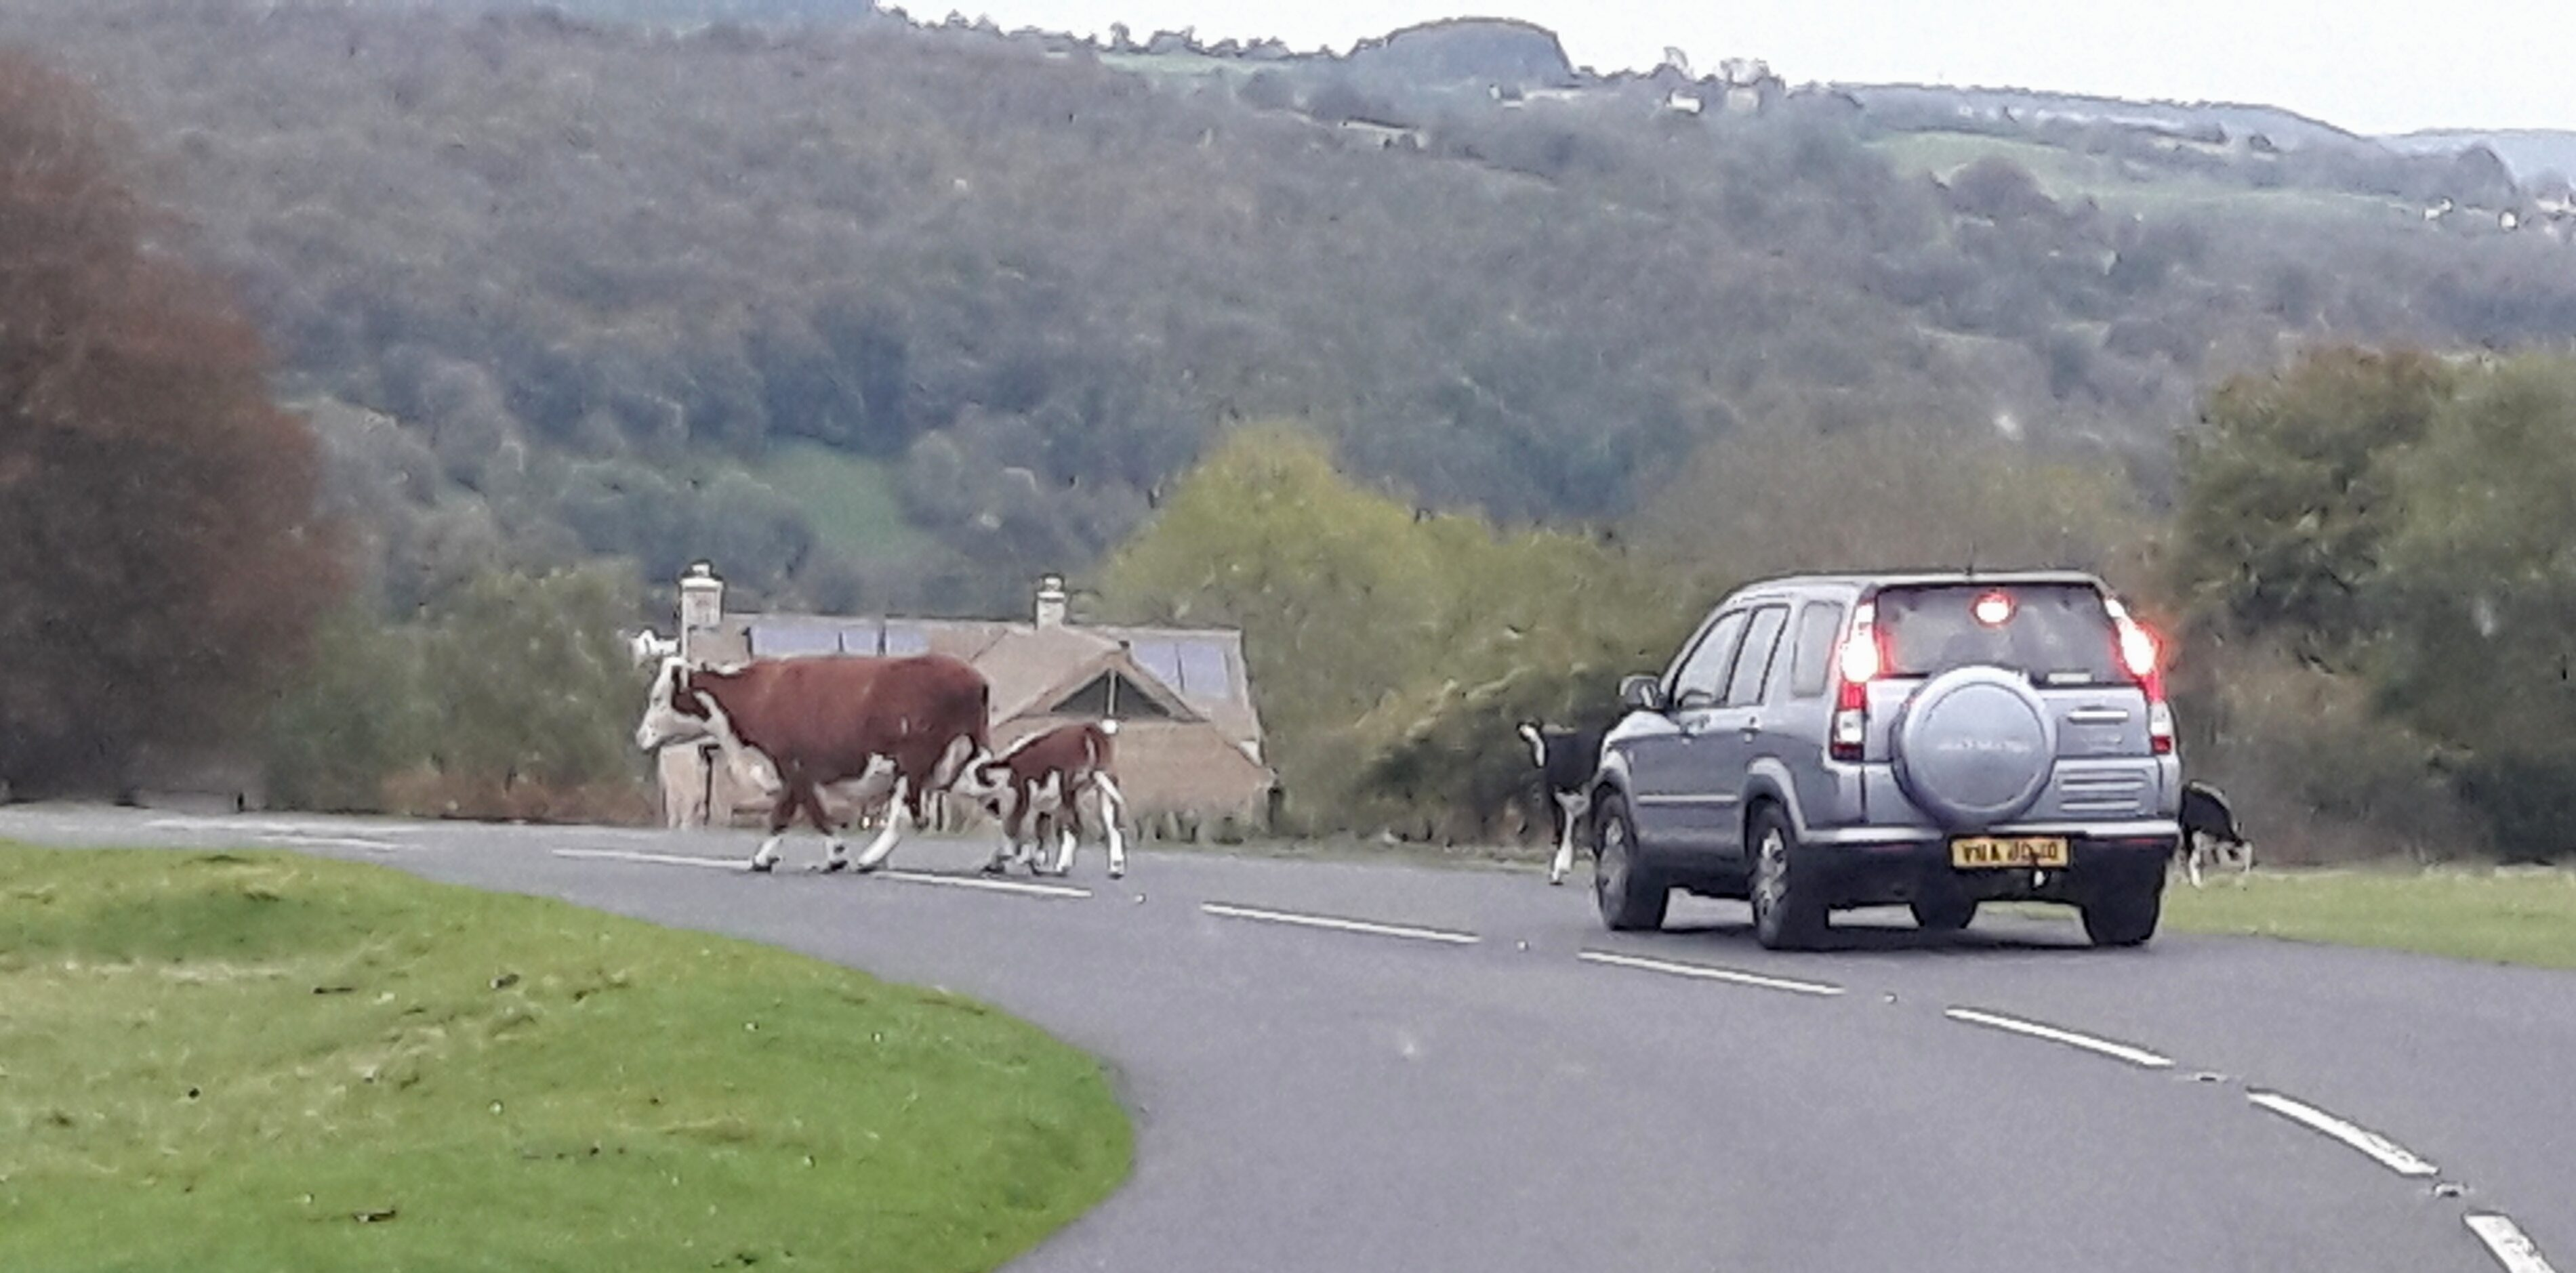 Cows roaming free on beautiful Minchinhampton Common